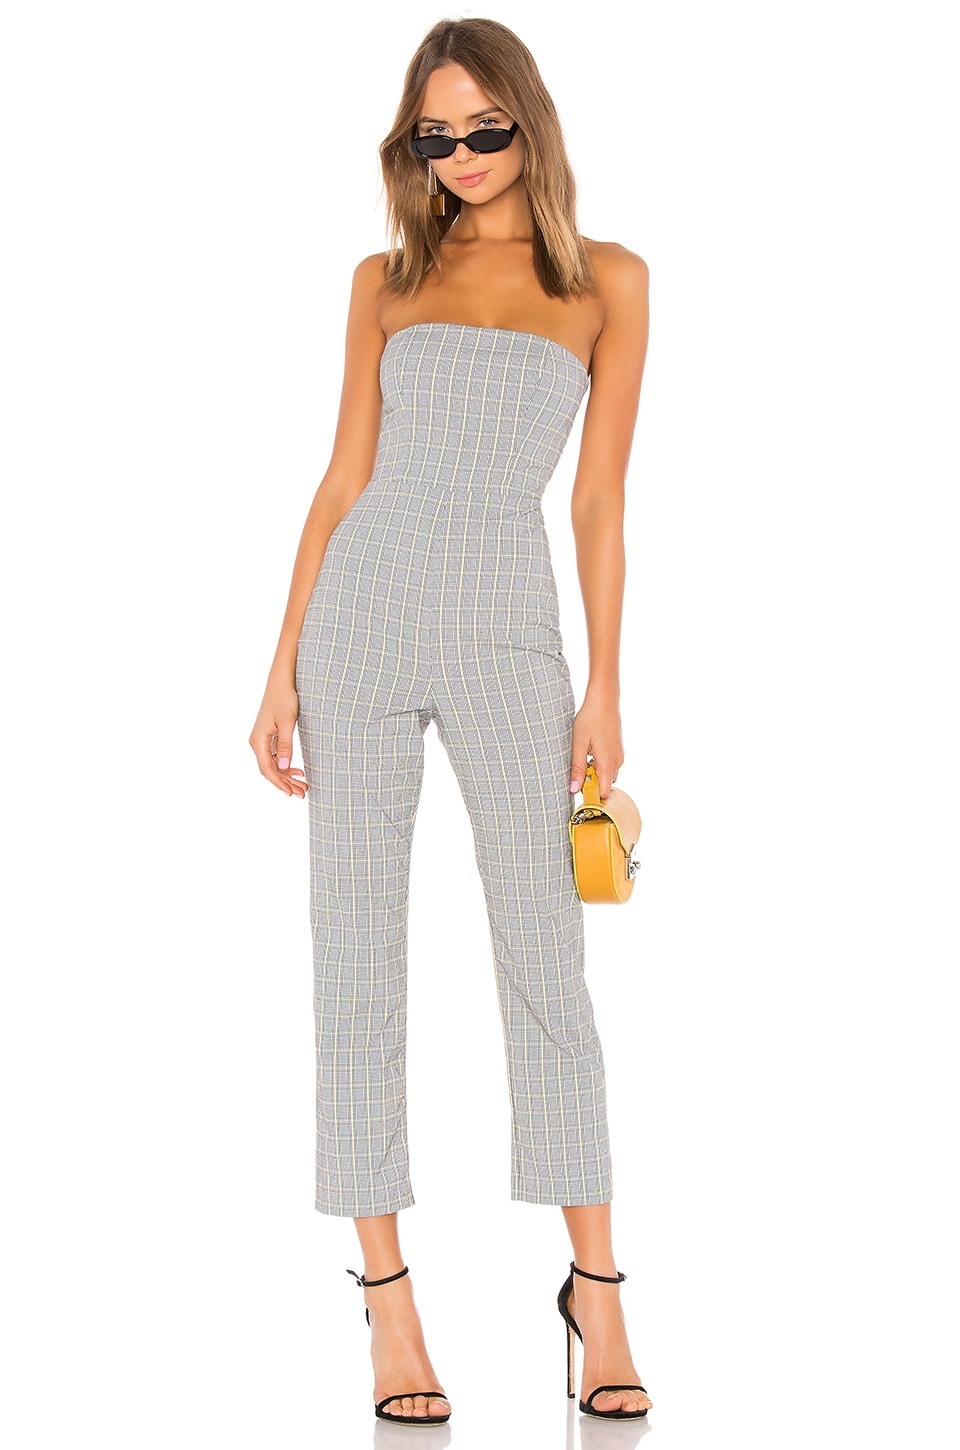 Privacy Please Autumn Jumpsuit in Black & Yellow Plaid